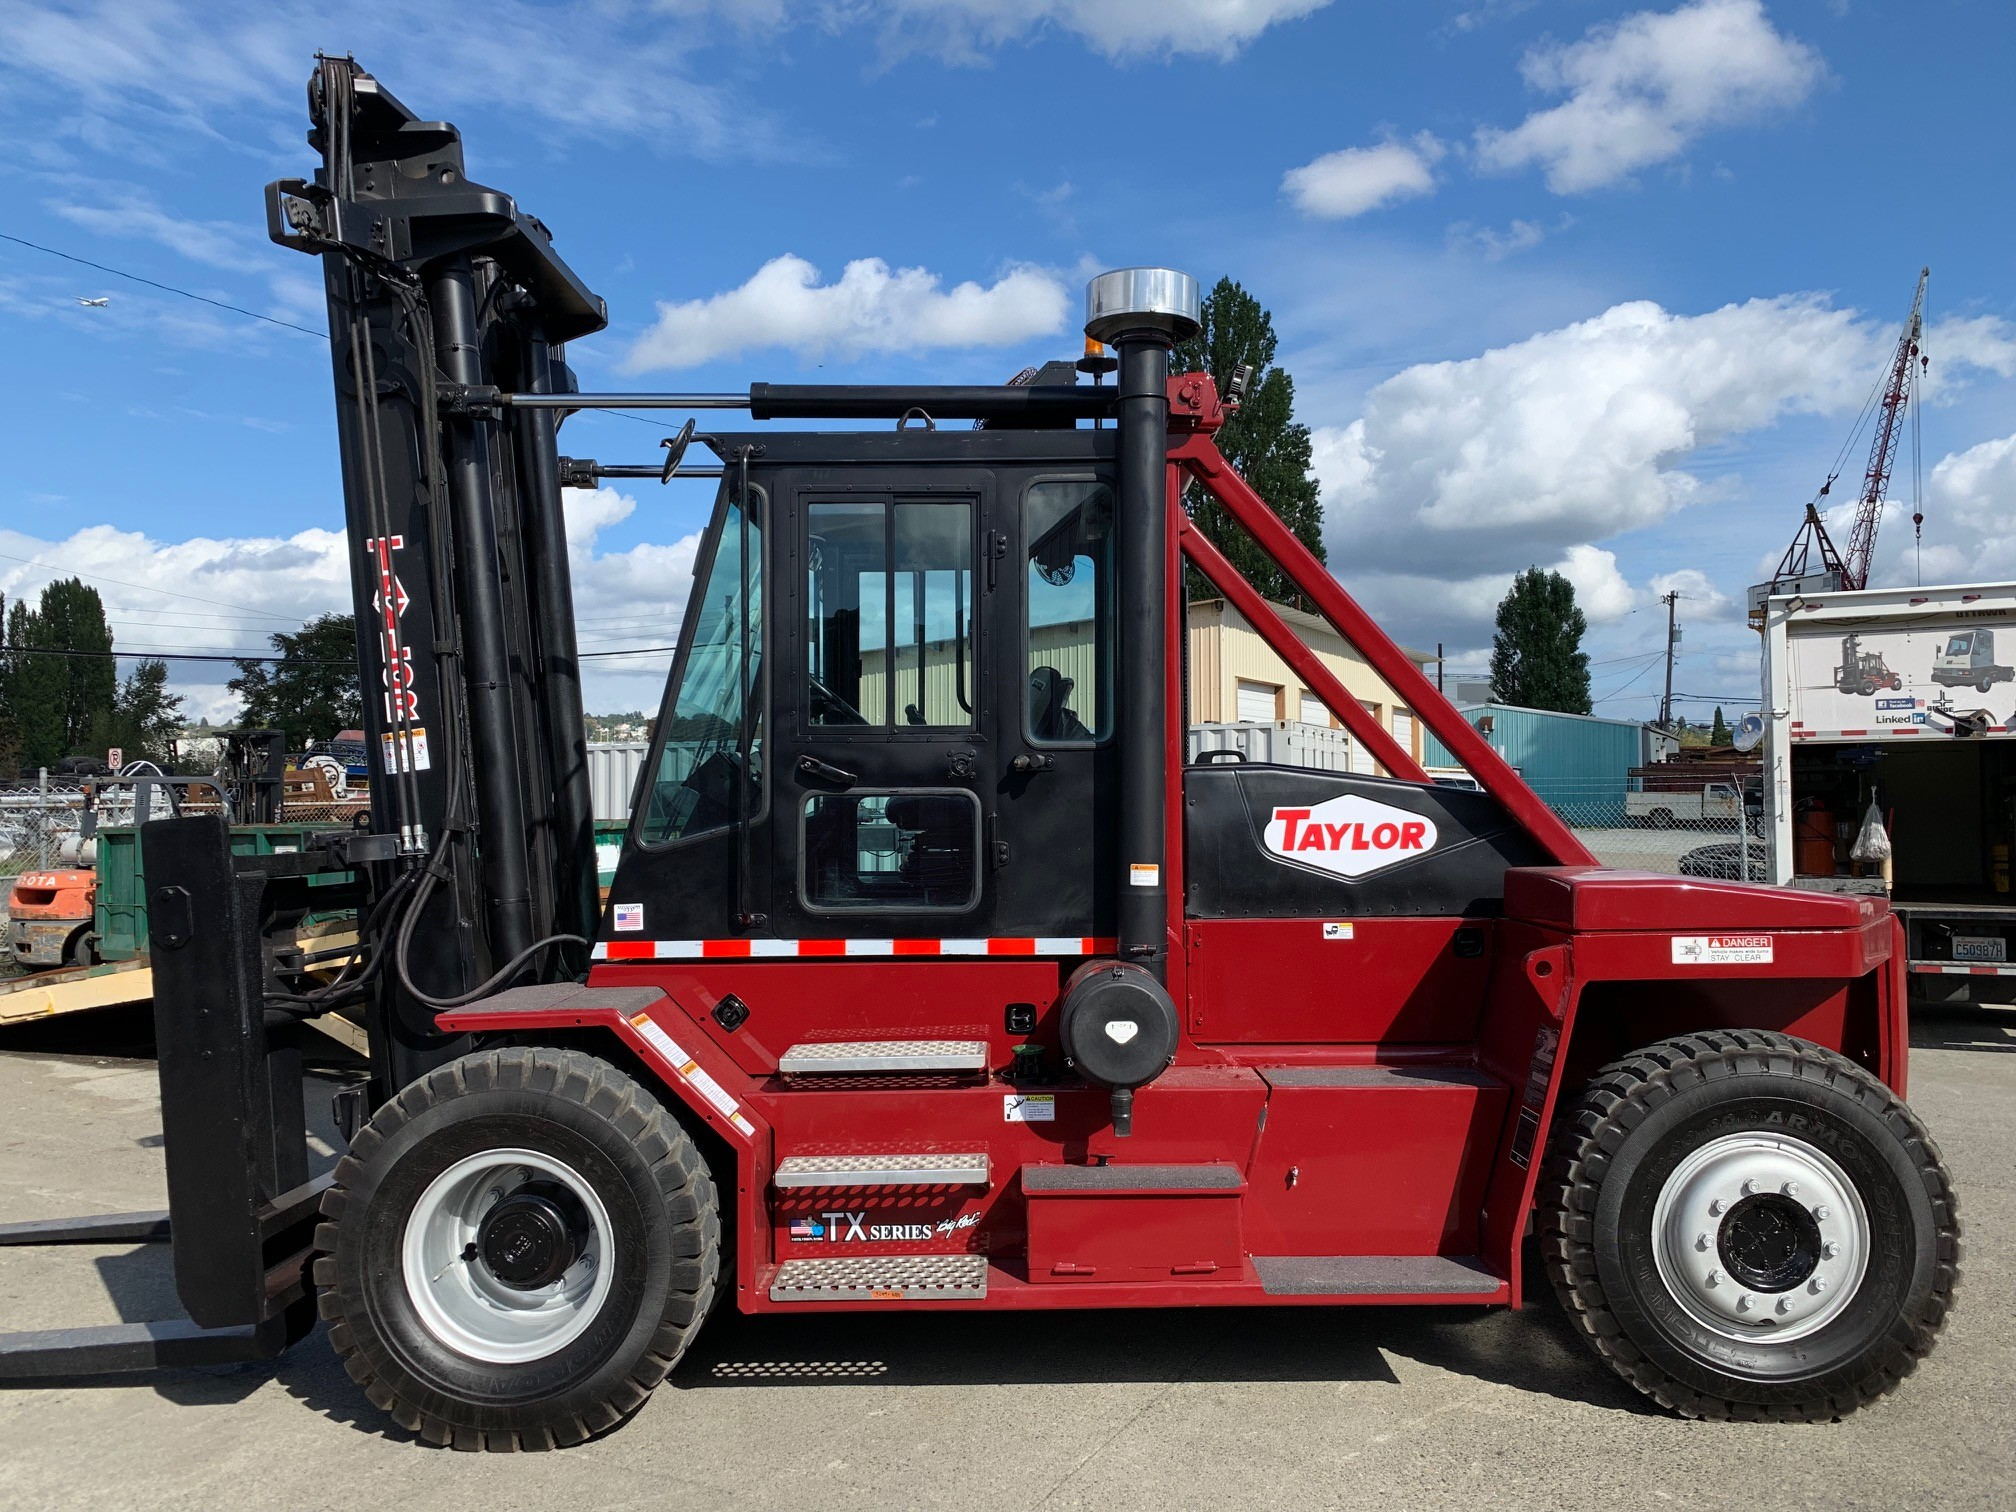 Used, 2007, Taylor, TX360L, Forklifts / Lift Trucks